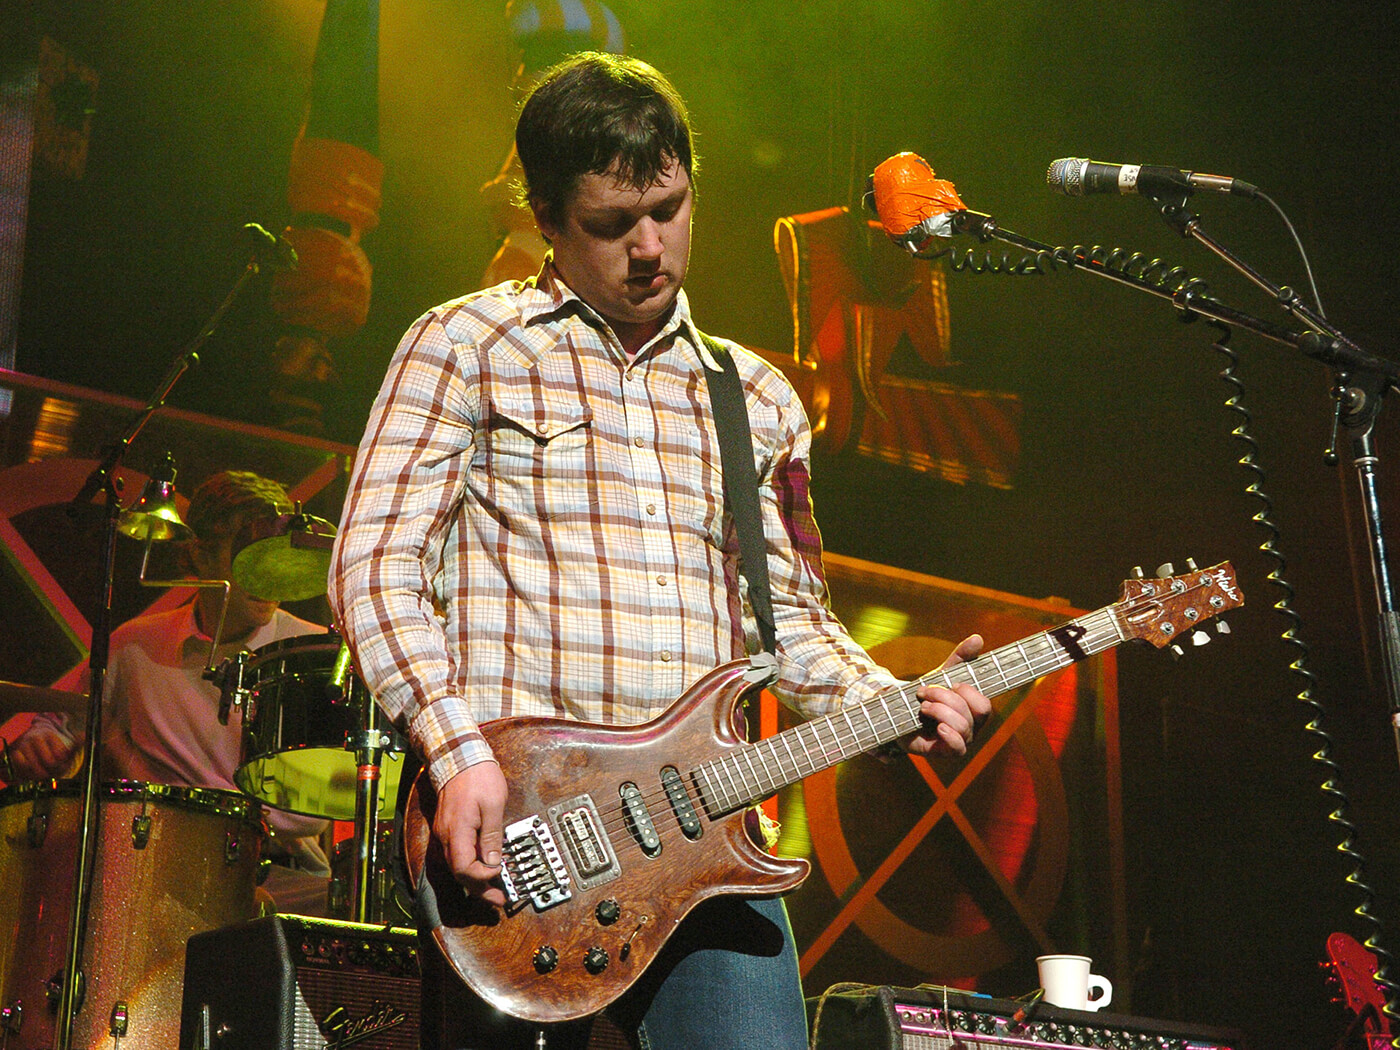 Issac Brock of Modest Mouse